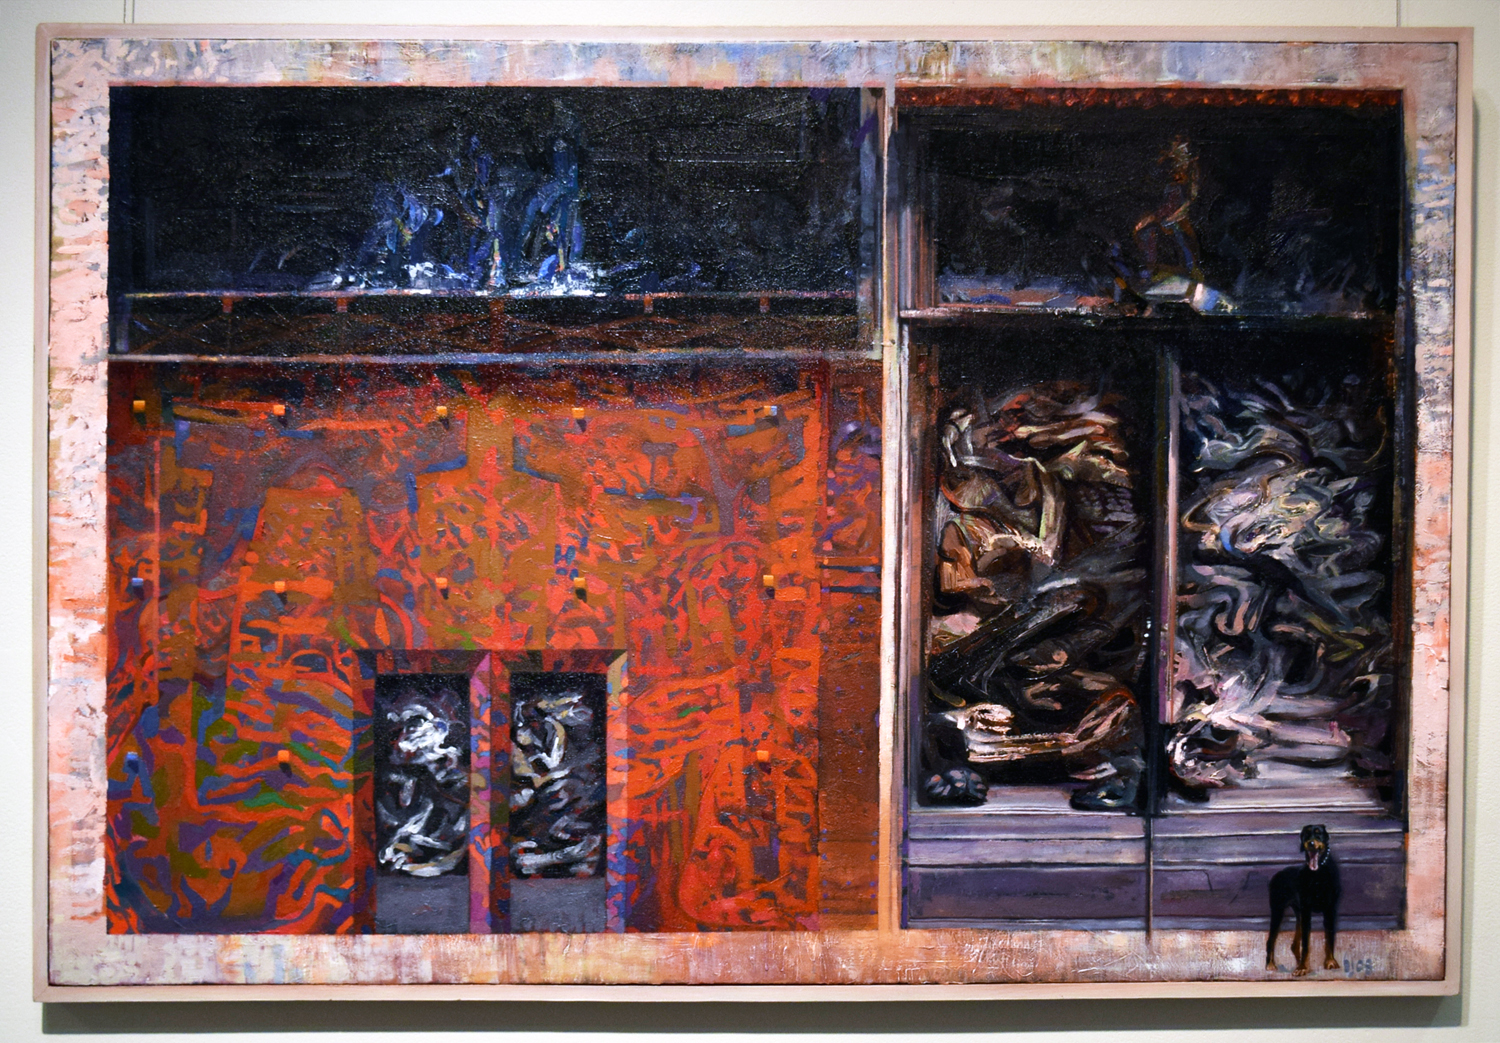 24. Ben Joel, 'Limbo Gates', 2008, acrylic and oil on board, on loan from a private collection